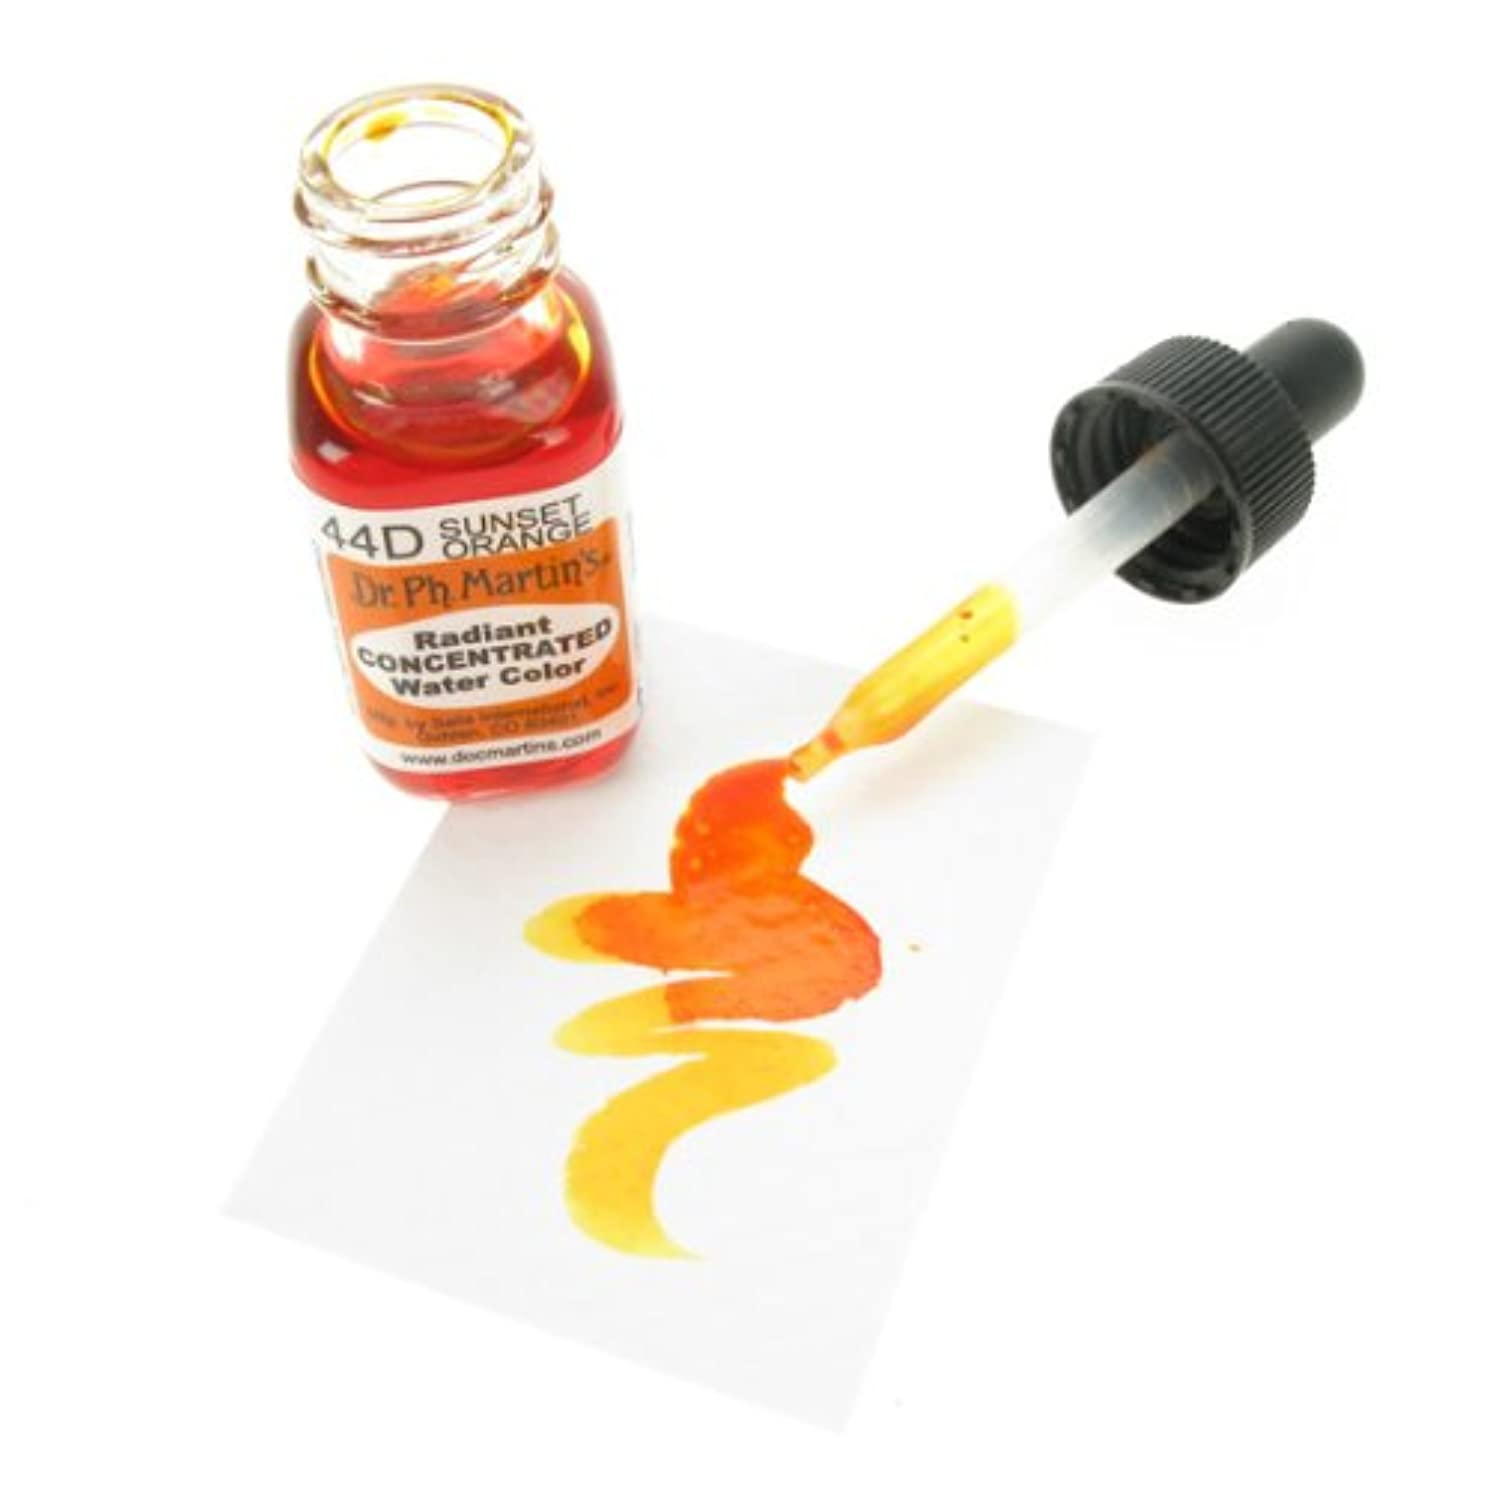 Dr. Ph. Martin's Radiant Concentrated Water Color, 0.5 oz, Sunset Orange (44D)